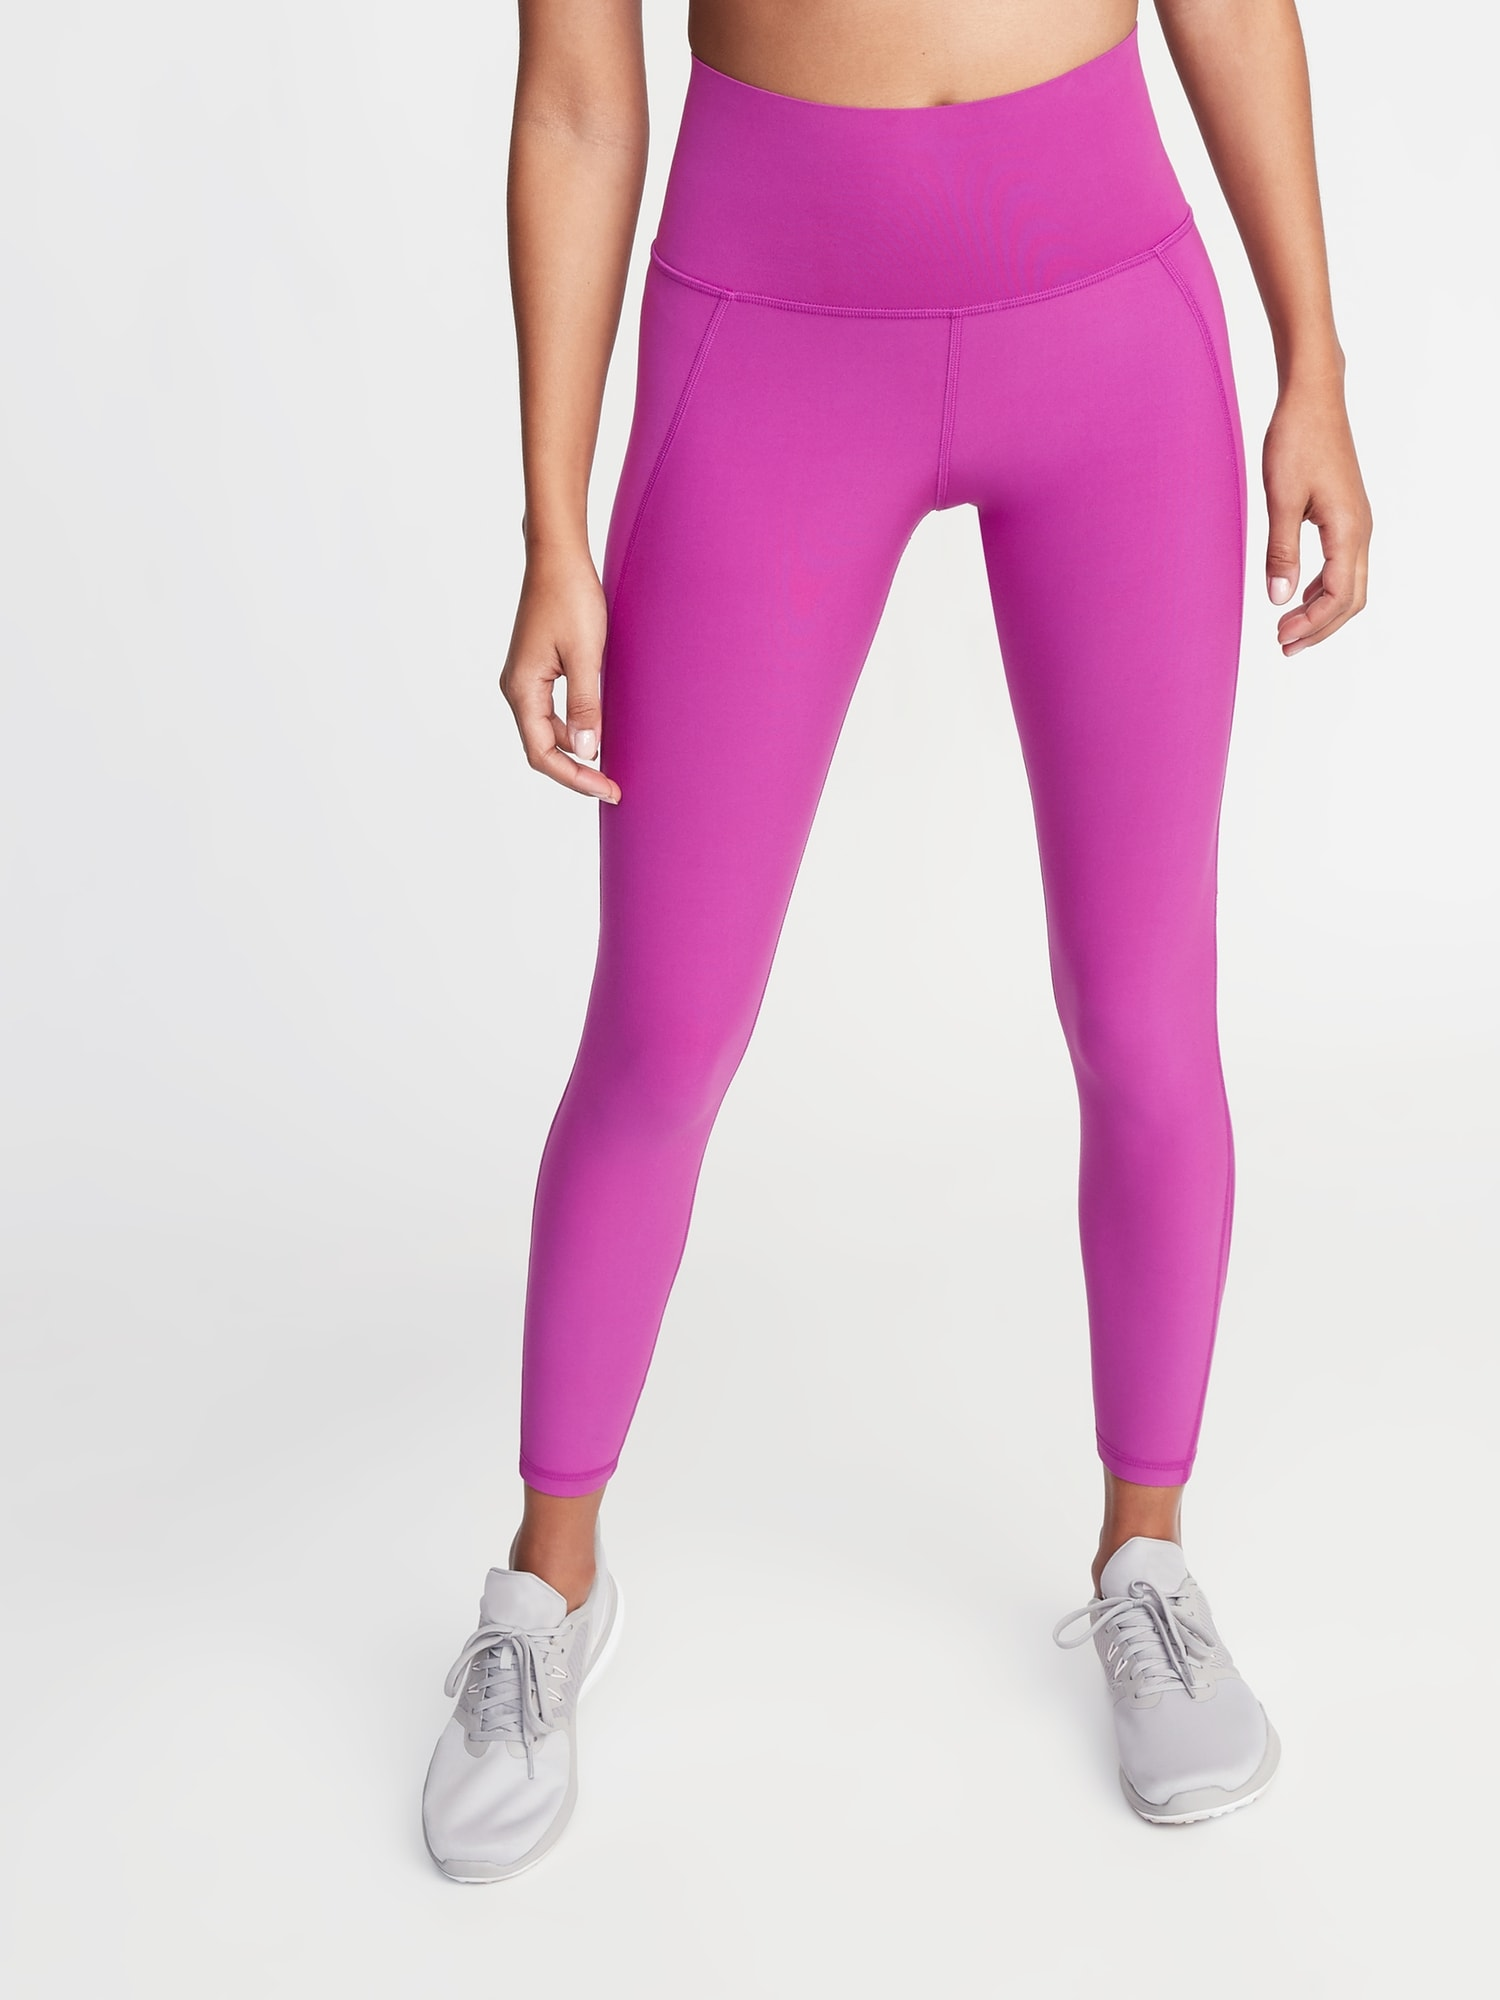 d81752f06a High-Rise Elevate Built-In Sculpt 7/8-Length Compression Leggings for Women    Old Navy